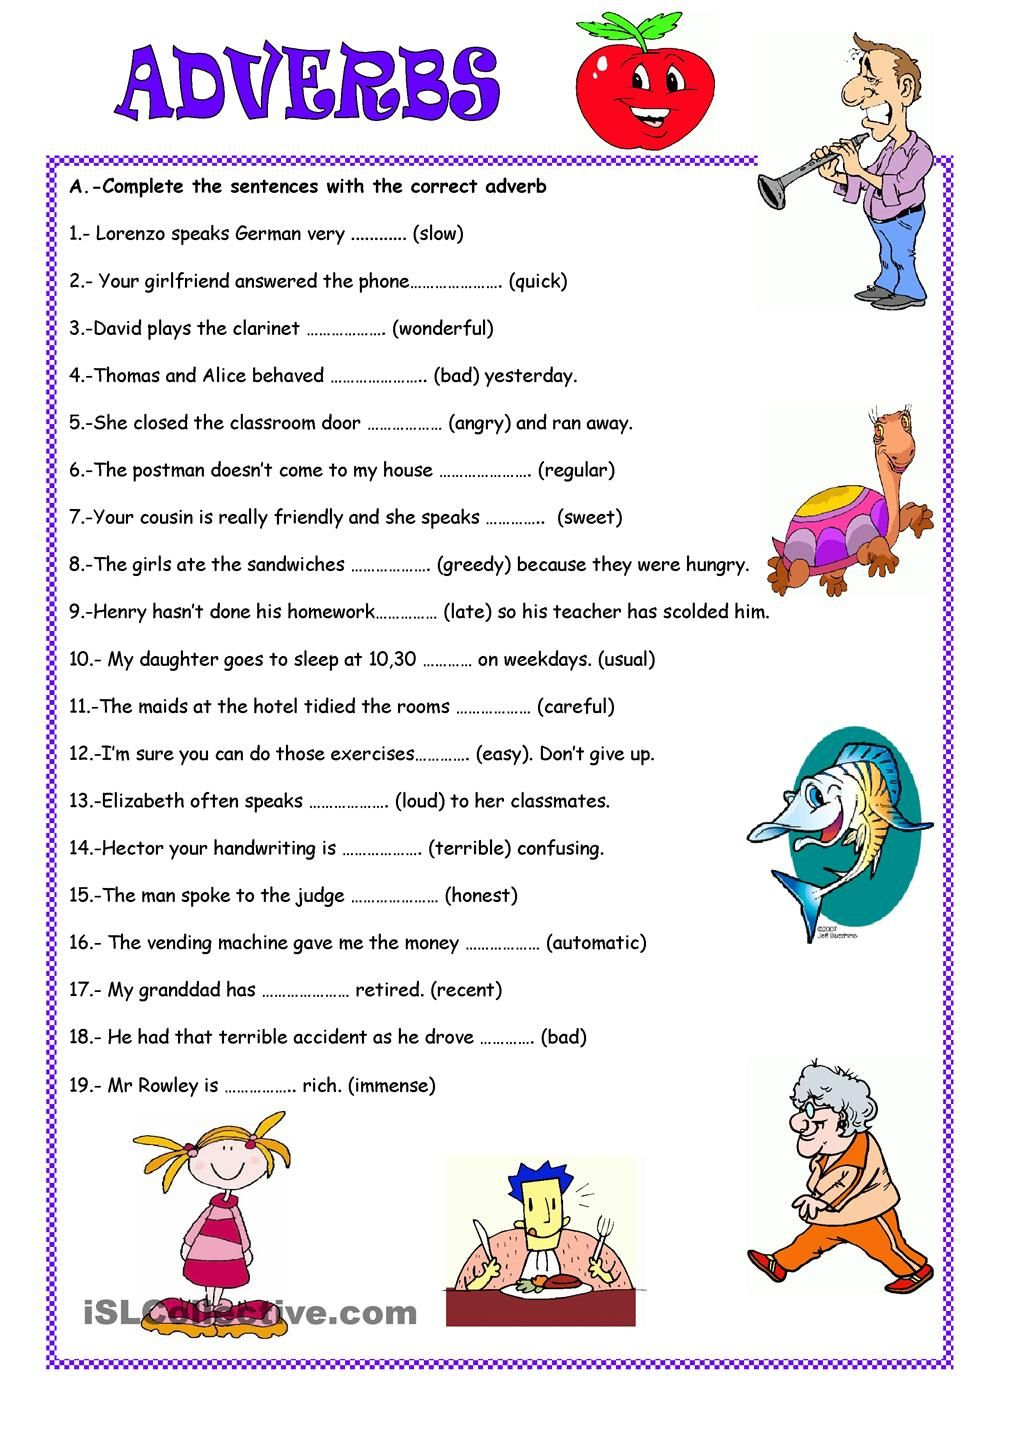 adverbs worksheet - Google Search | Adverbs | Pinterest | Adverbs ...